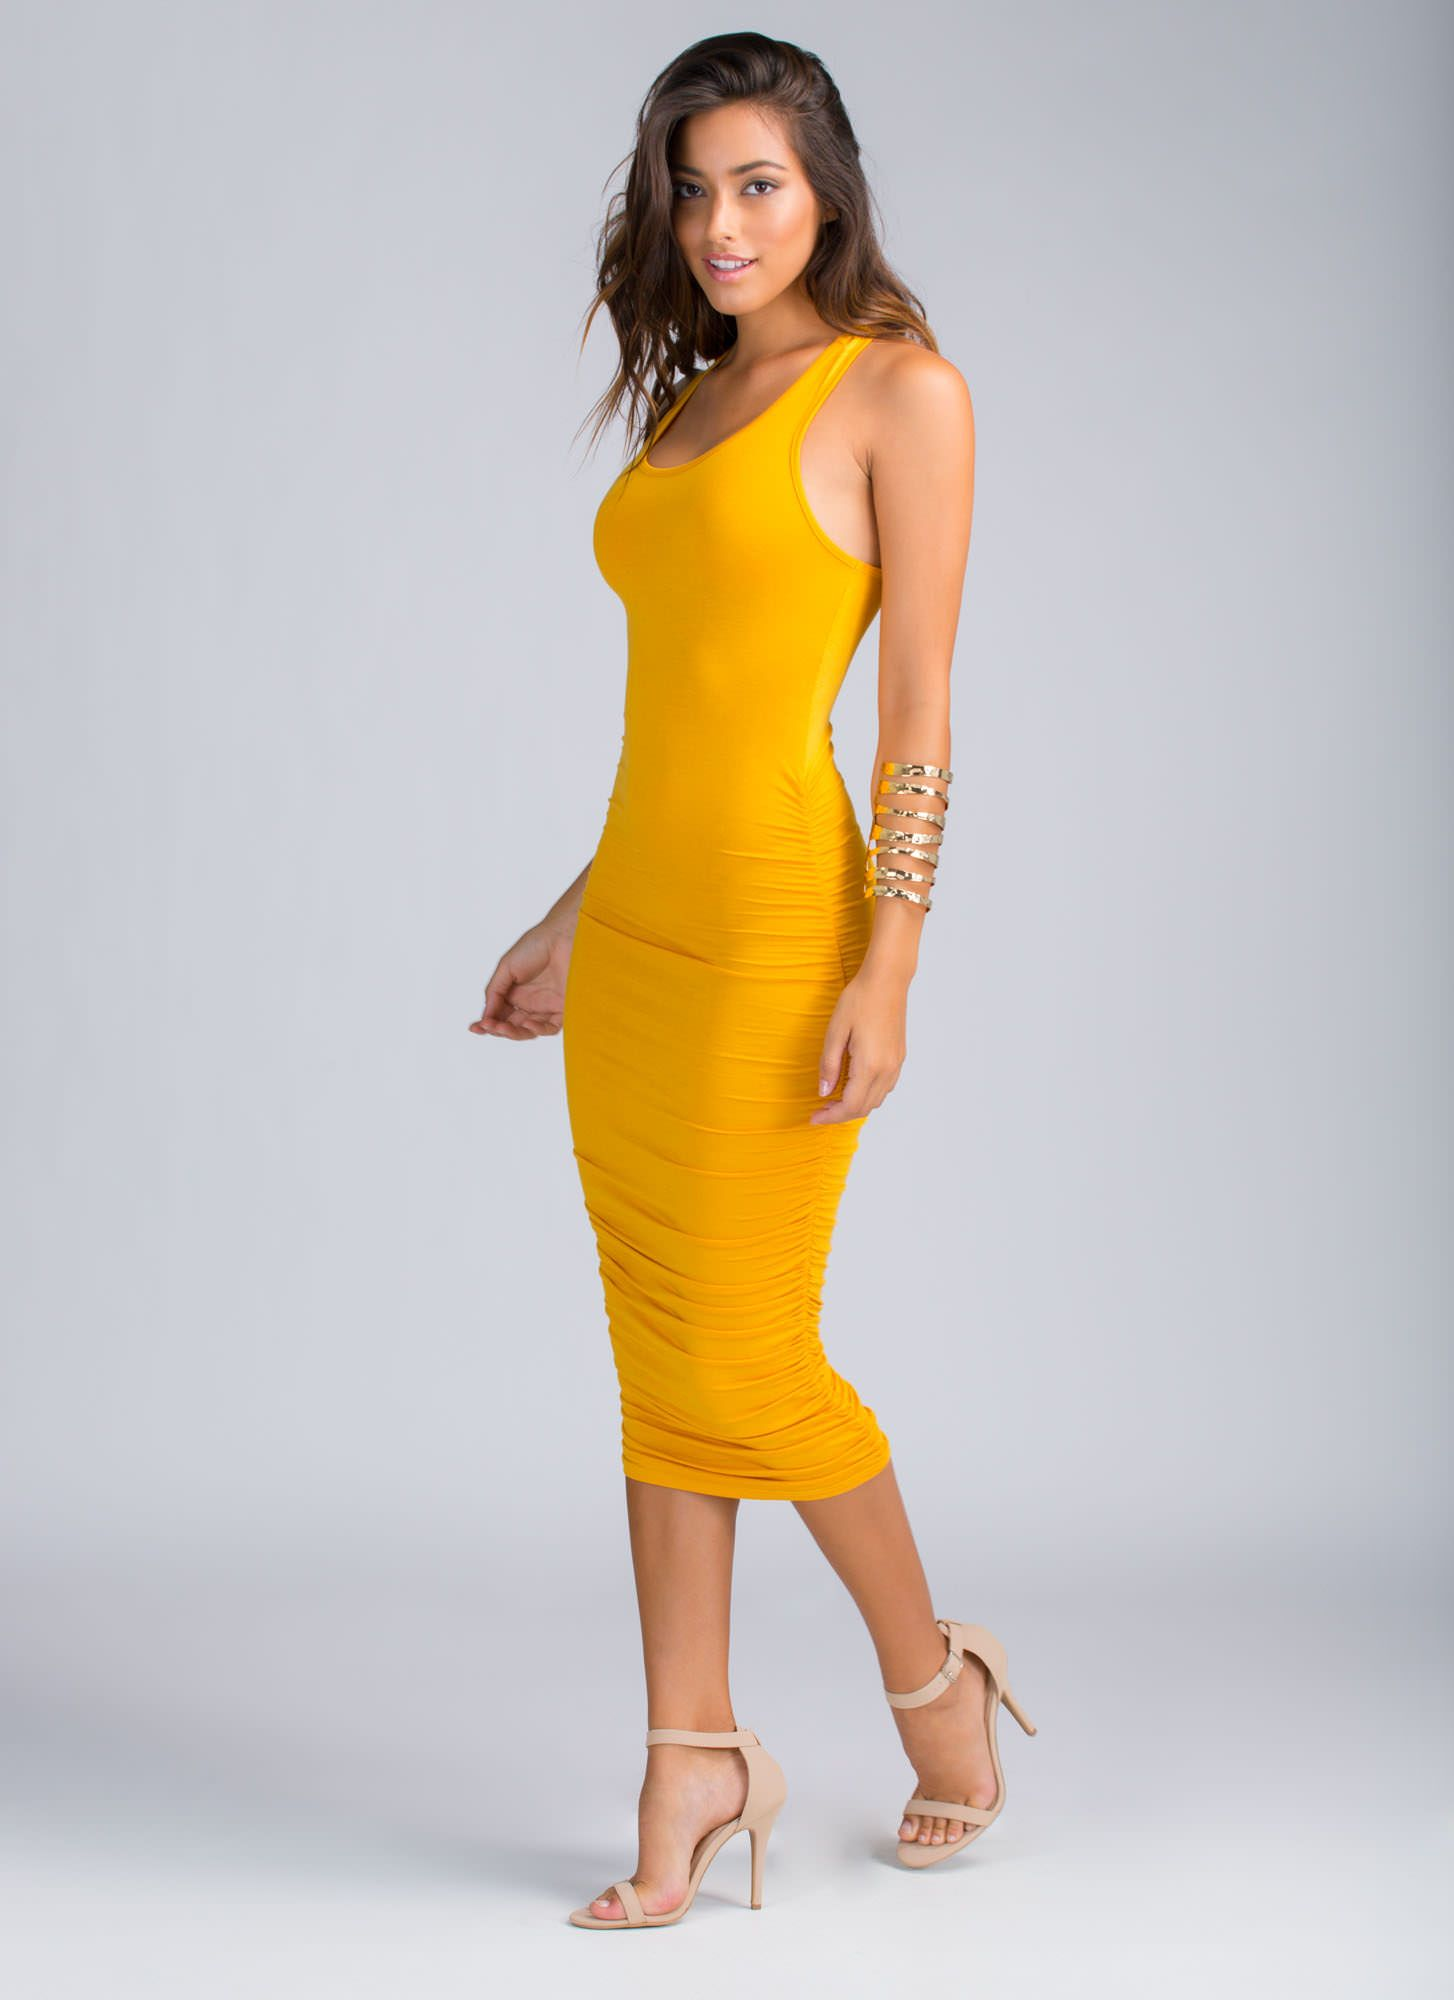 f8d35bf9e9a3 Ruche Me Racer Bodycon Dress MUSTARD. Ruche Me Racer Bodycon Dress MUSTARD  Midi Dress Outfit